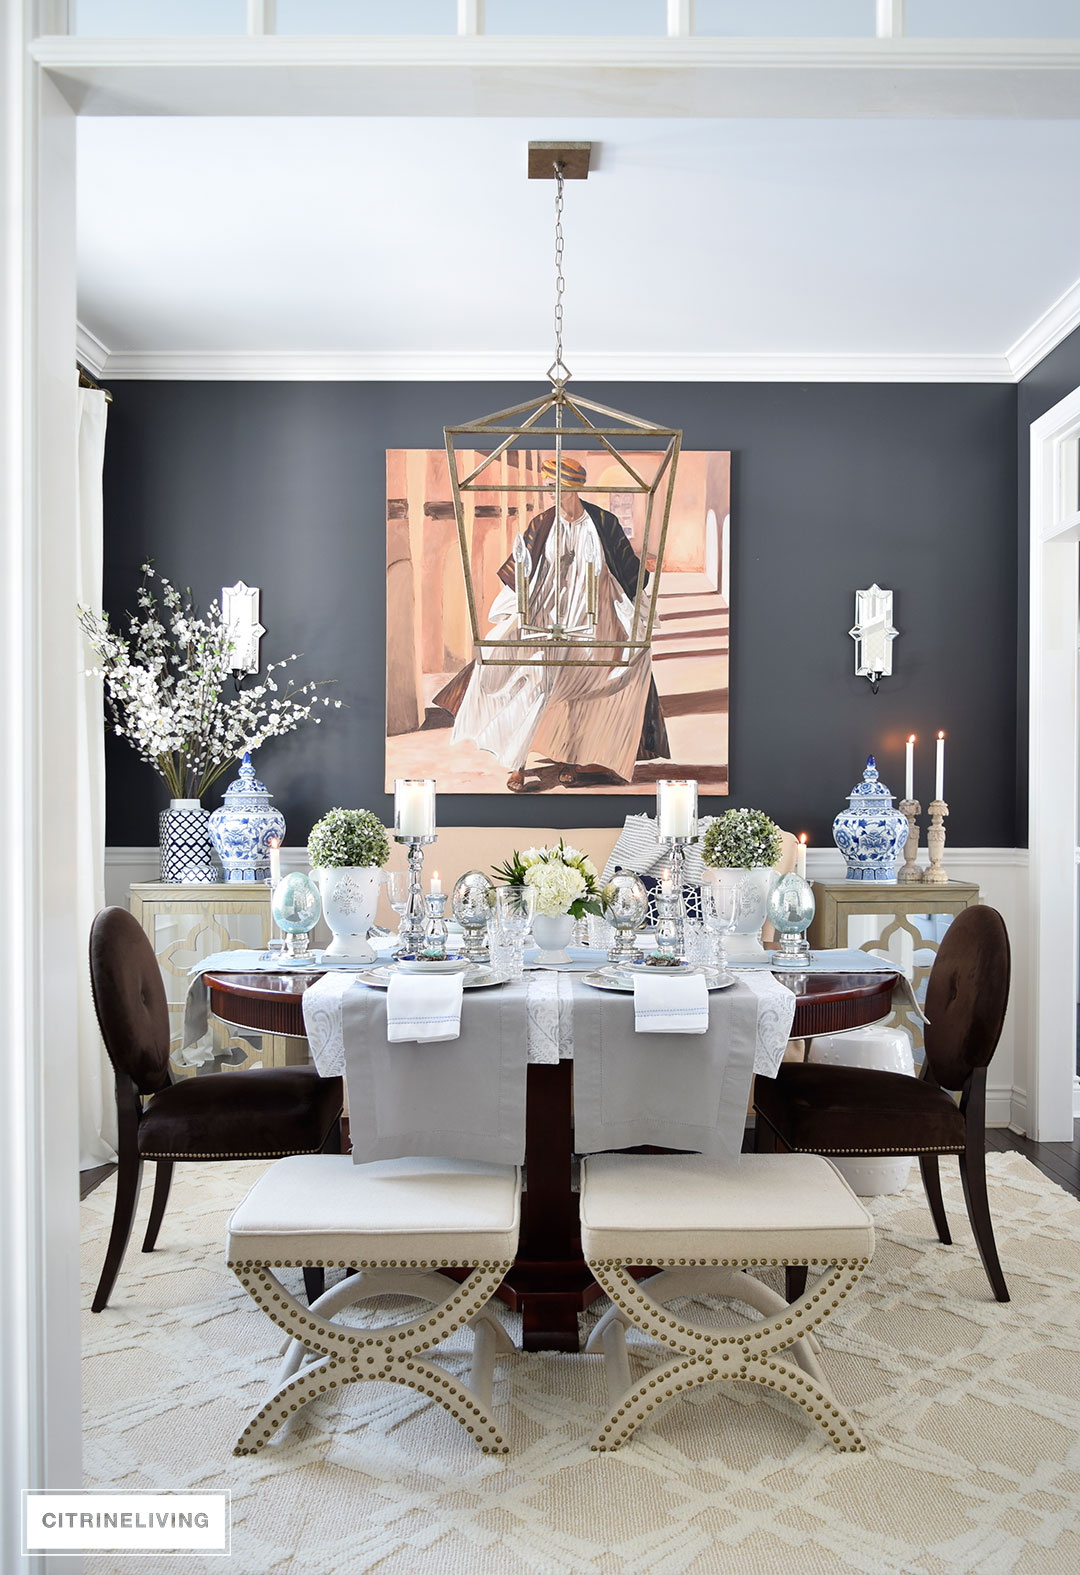 Easter Tablescape set in dining room with elegant black wall color, Cracked Pepper Behr Paint, upholstered stools and settee create an unexpected seating arrangement.